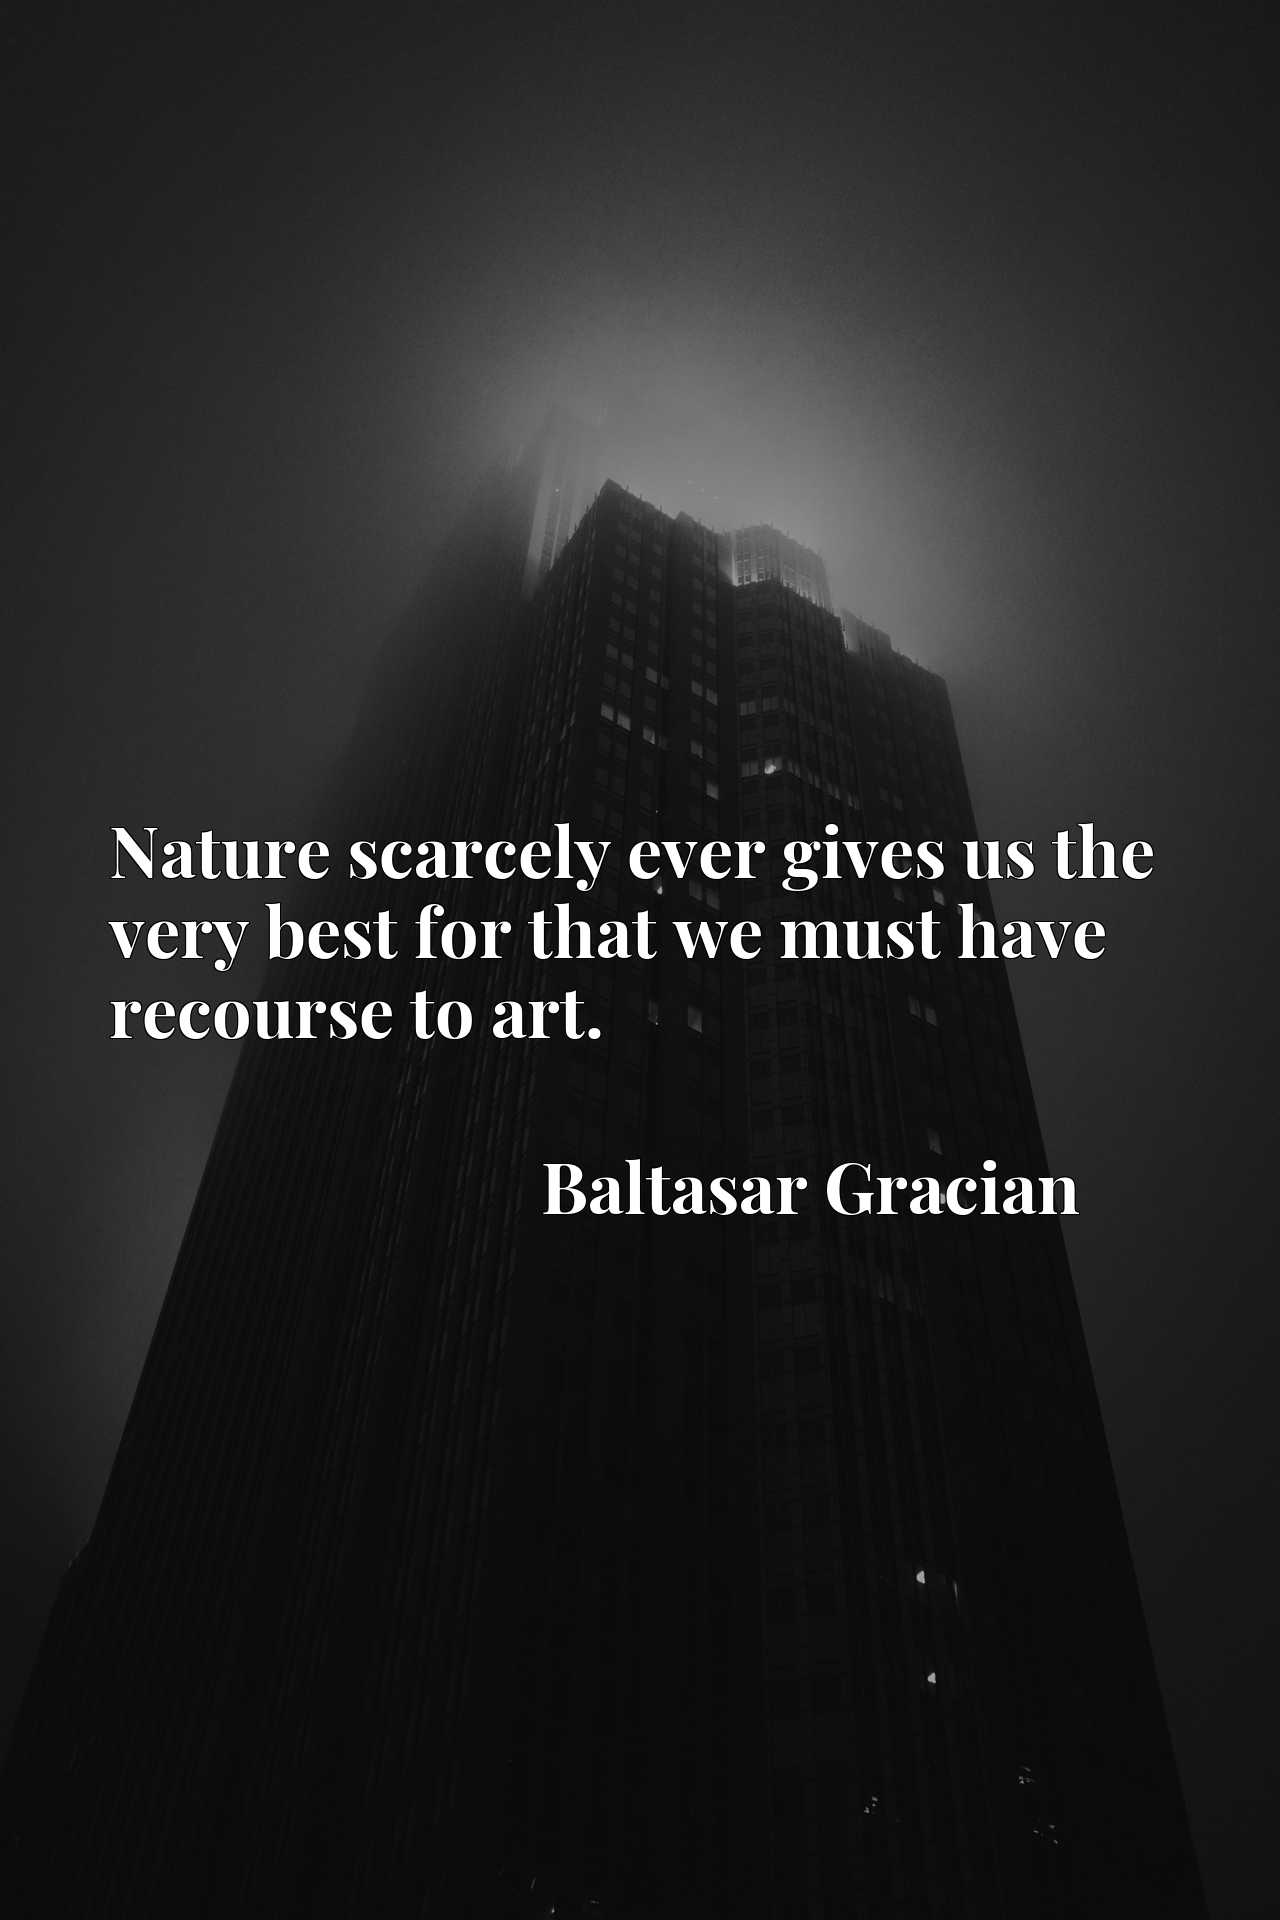 Nature scarcely ever gives us the very best for that we must have recourse to art.